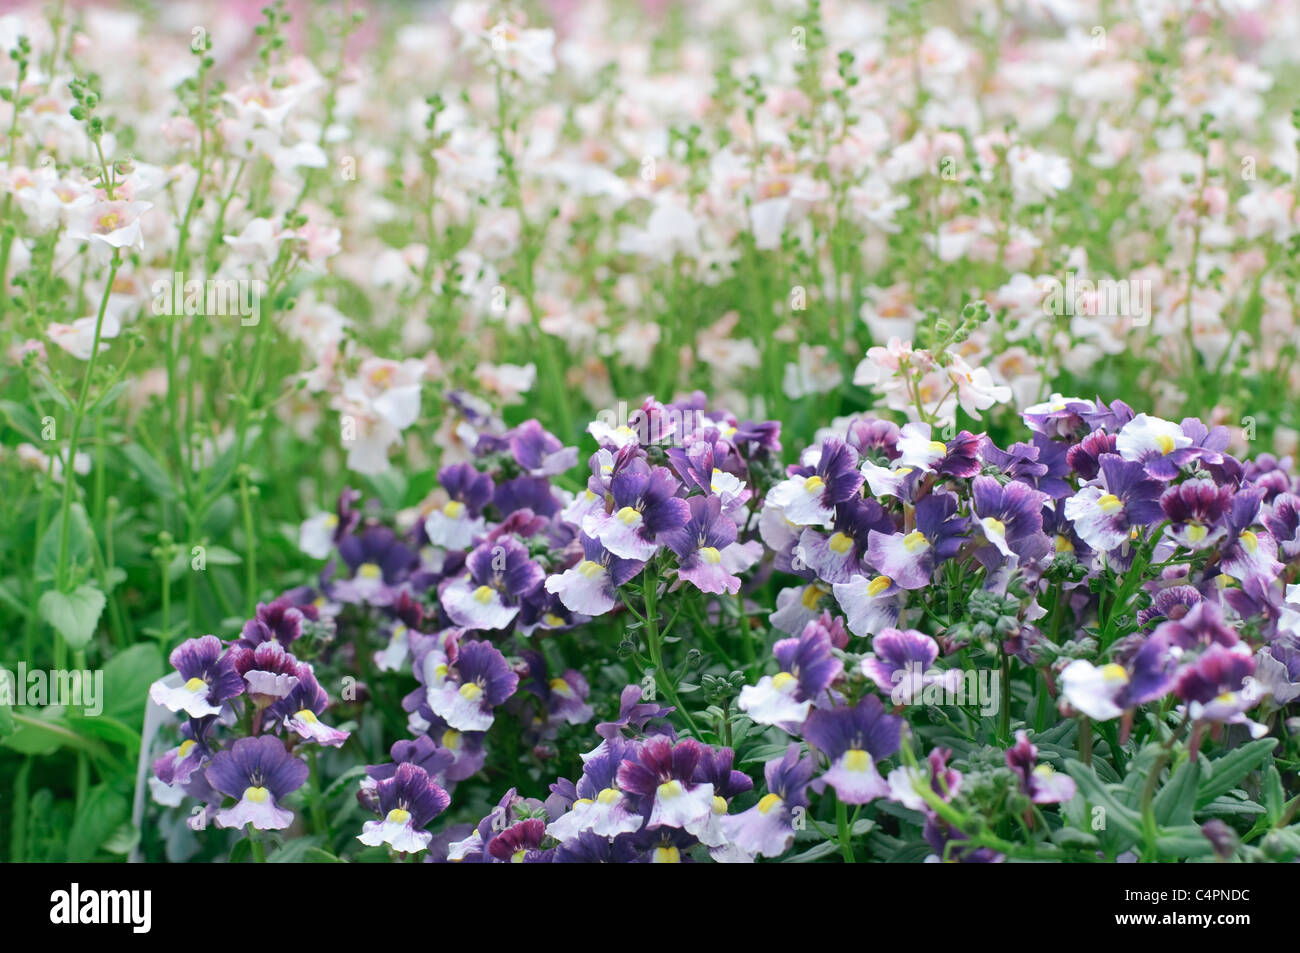 Blooming Pansy Flowers, spring meadow - Stock Image